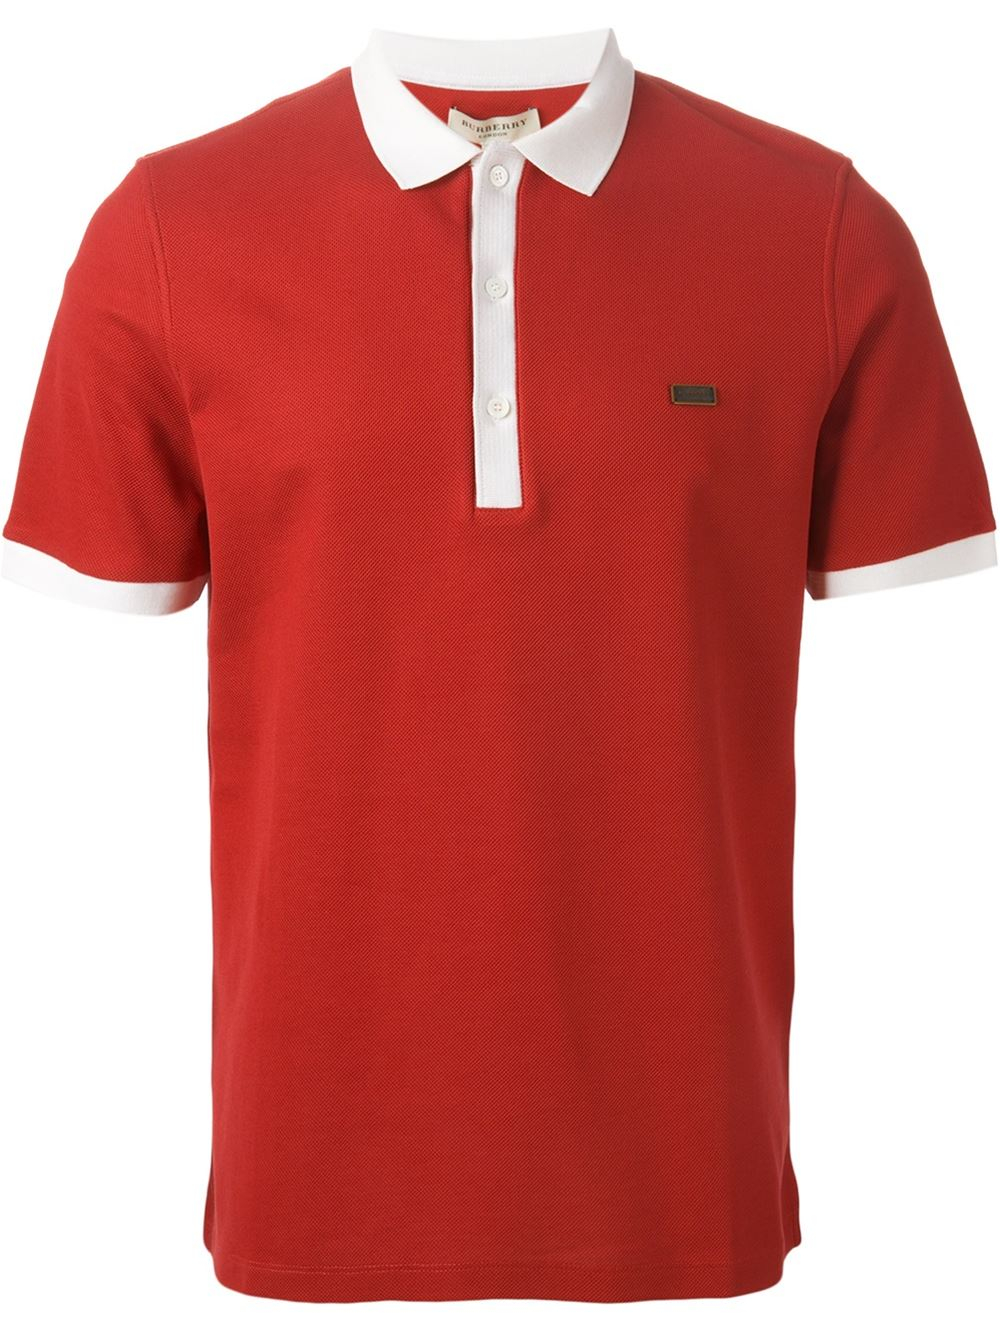 Burberry London Contrast Trim Polo Shirt In Red For Men Lyst